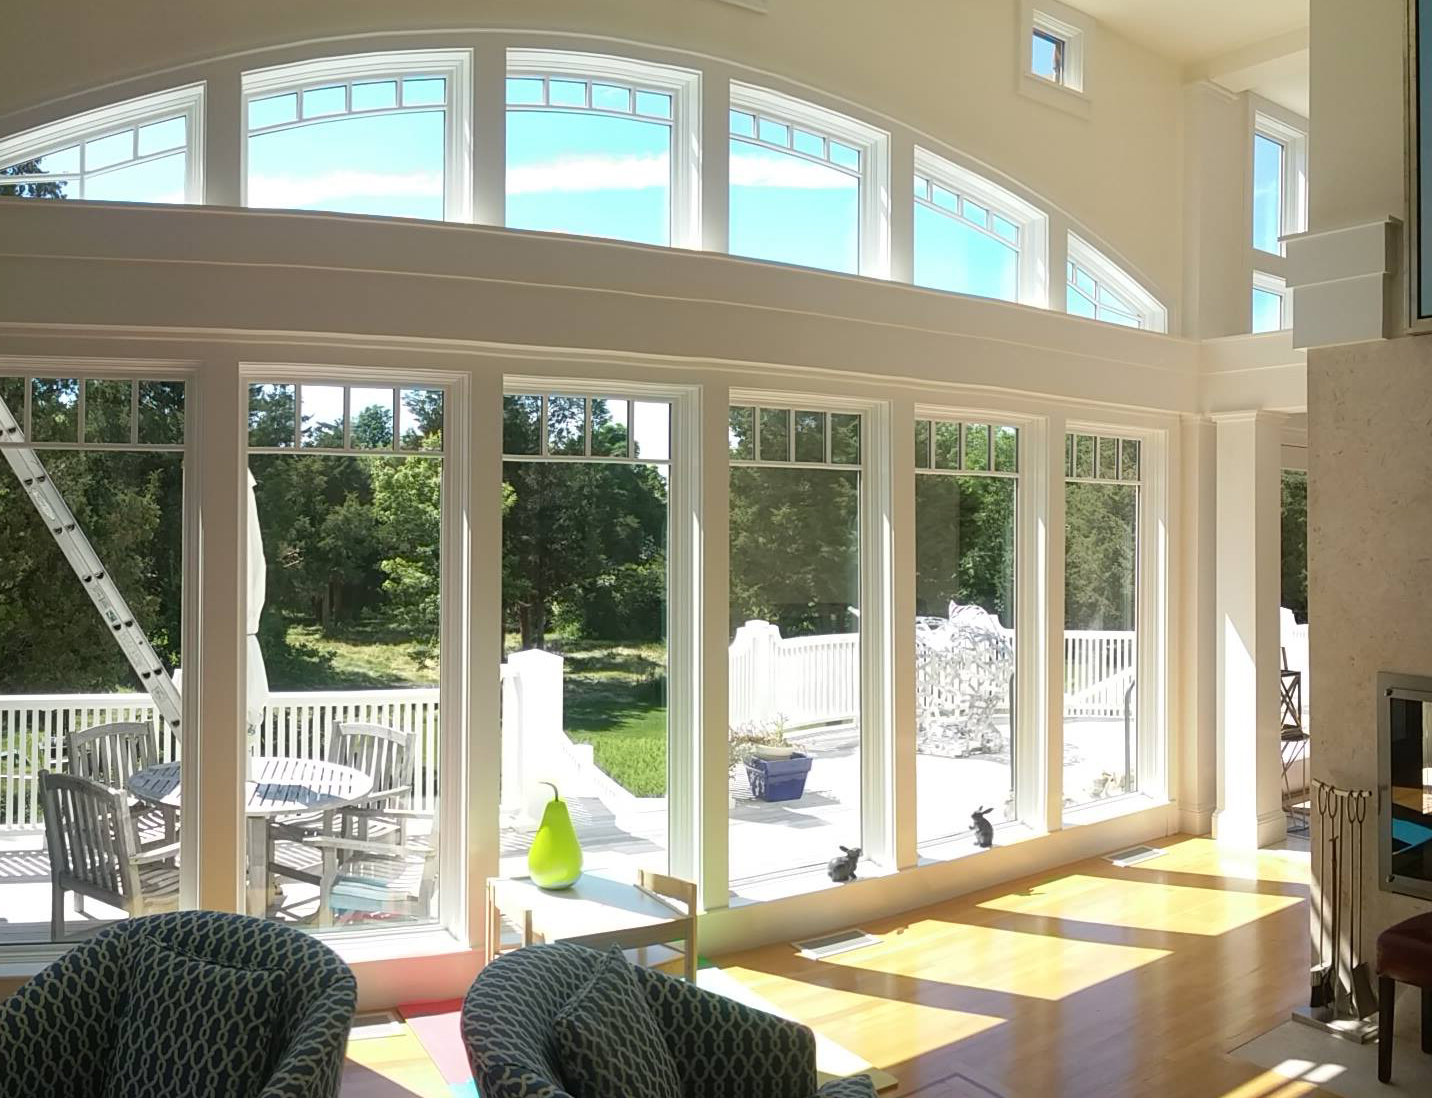 Residential & commercial window cleaning, awning cleaning, ultrasonic blind cleaning, pressure cleaning; Greater Boston, Cape Cod, MA, RI, PA